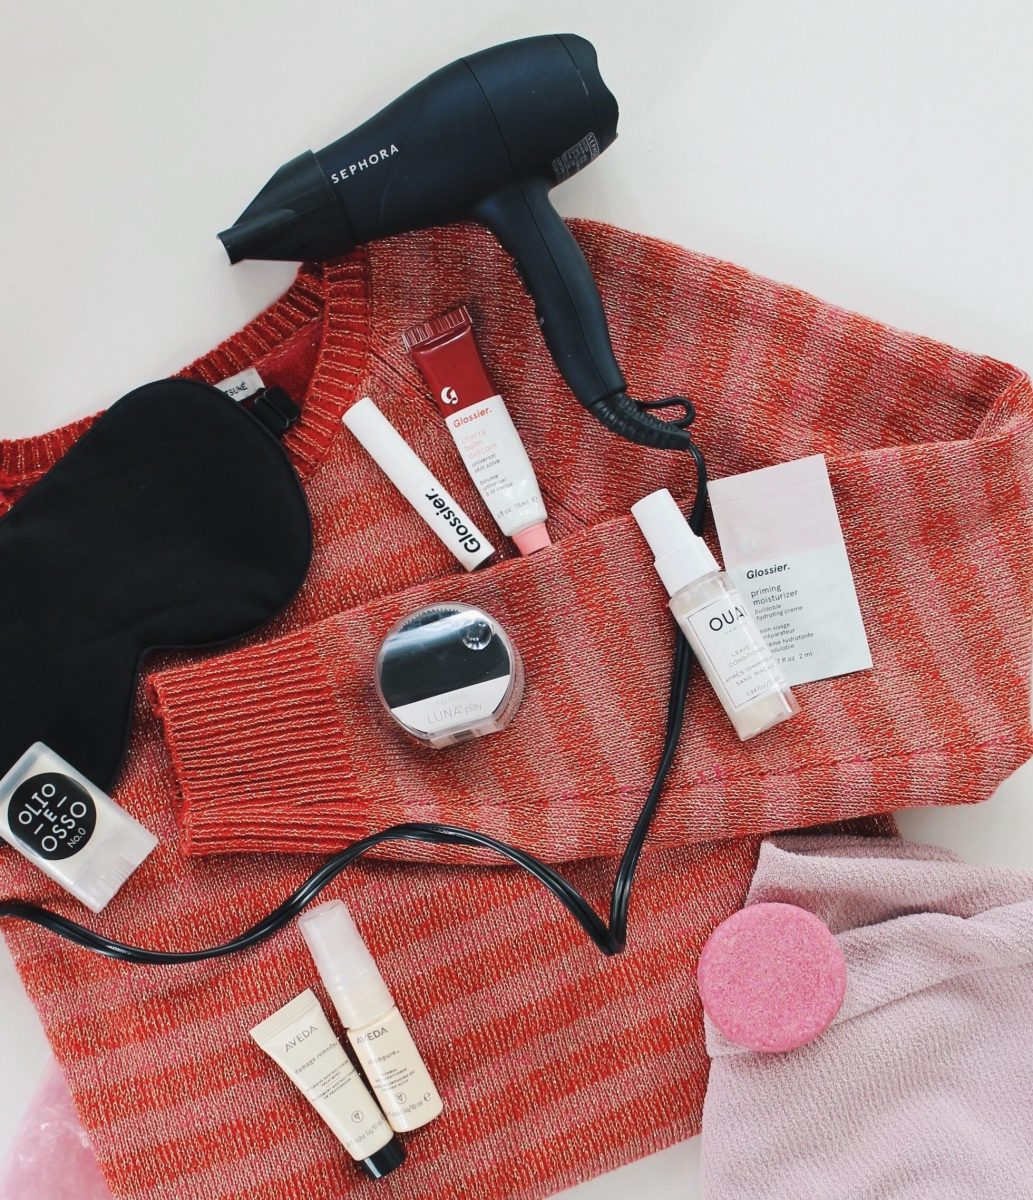 A Packing List for Beauty Enthusiasts